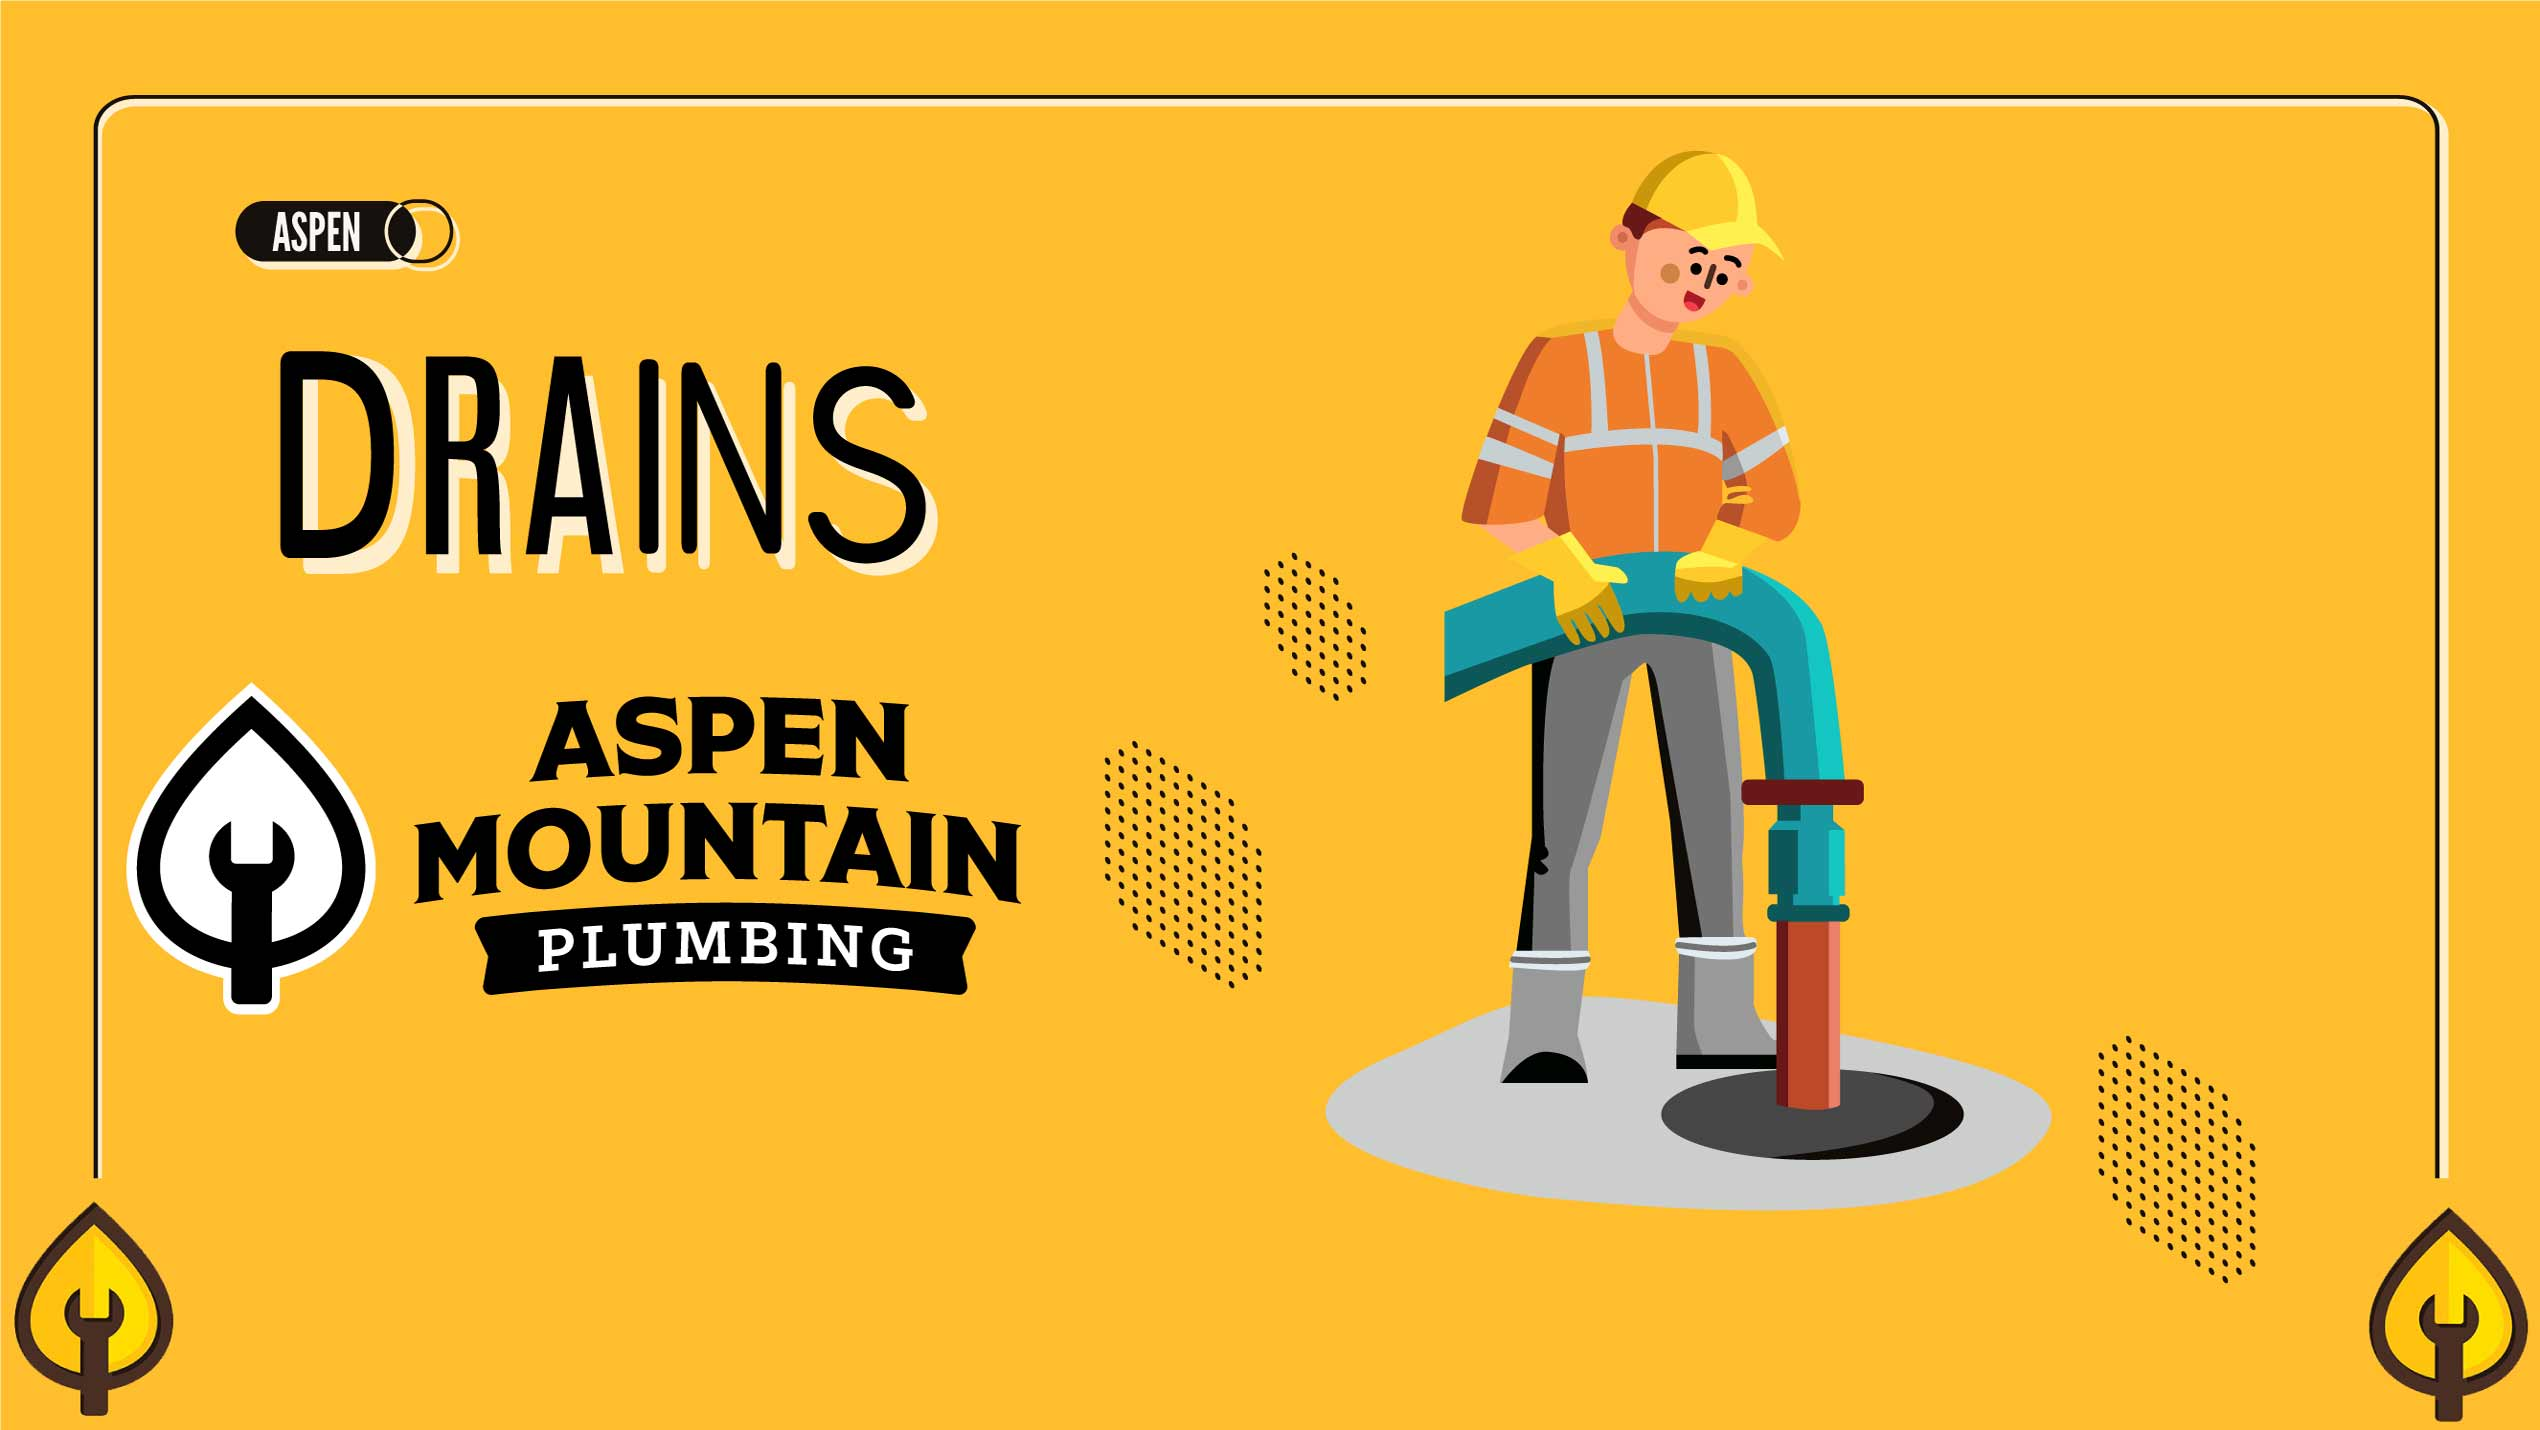 Lance Ball, owner of Aspen Mountain Plumbing, shows you how we prepare for a drain camera inspection.